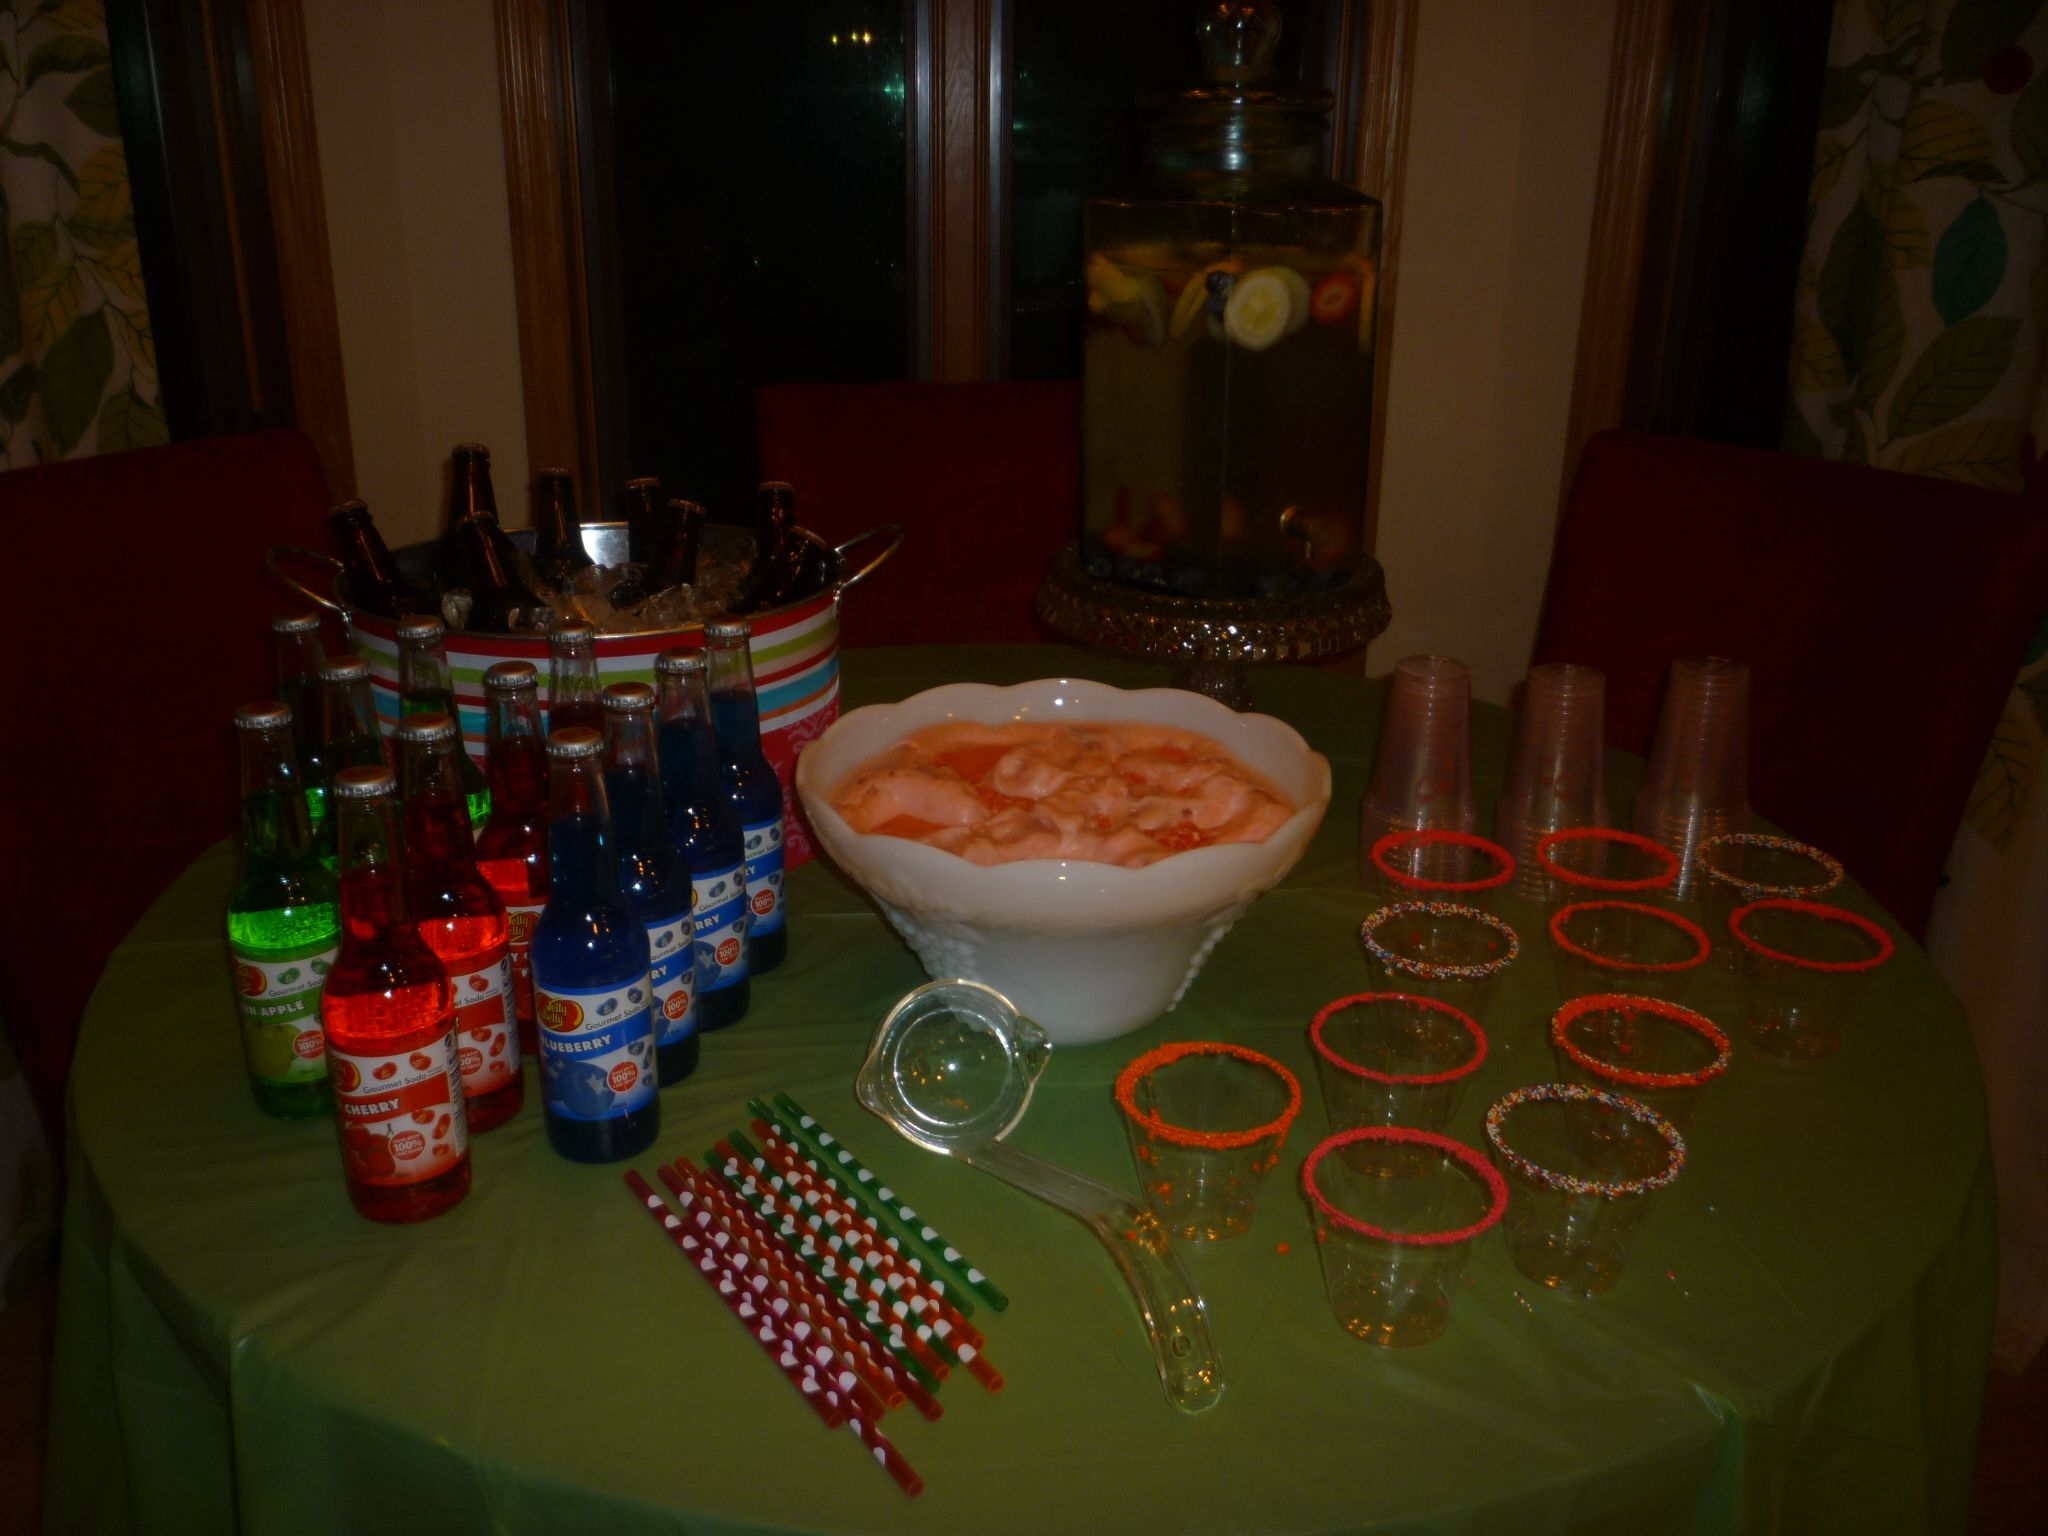 Pin on Party ideas!!